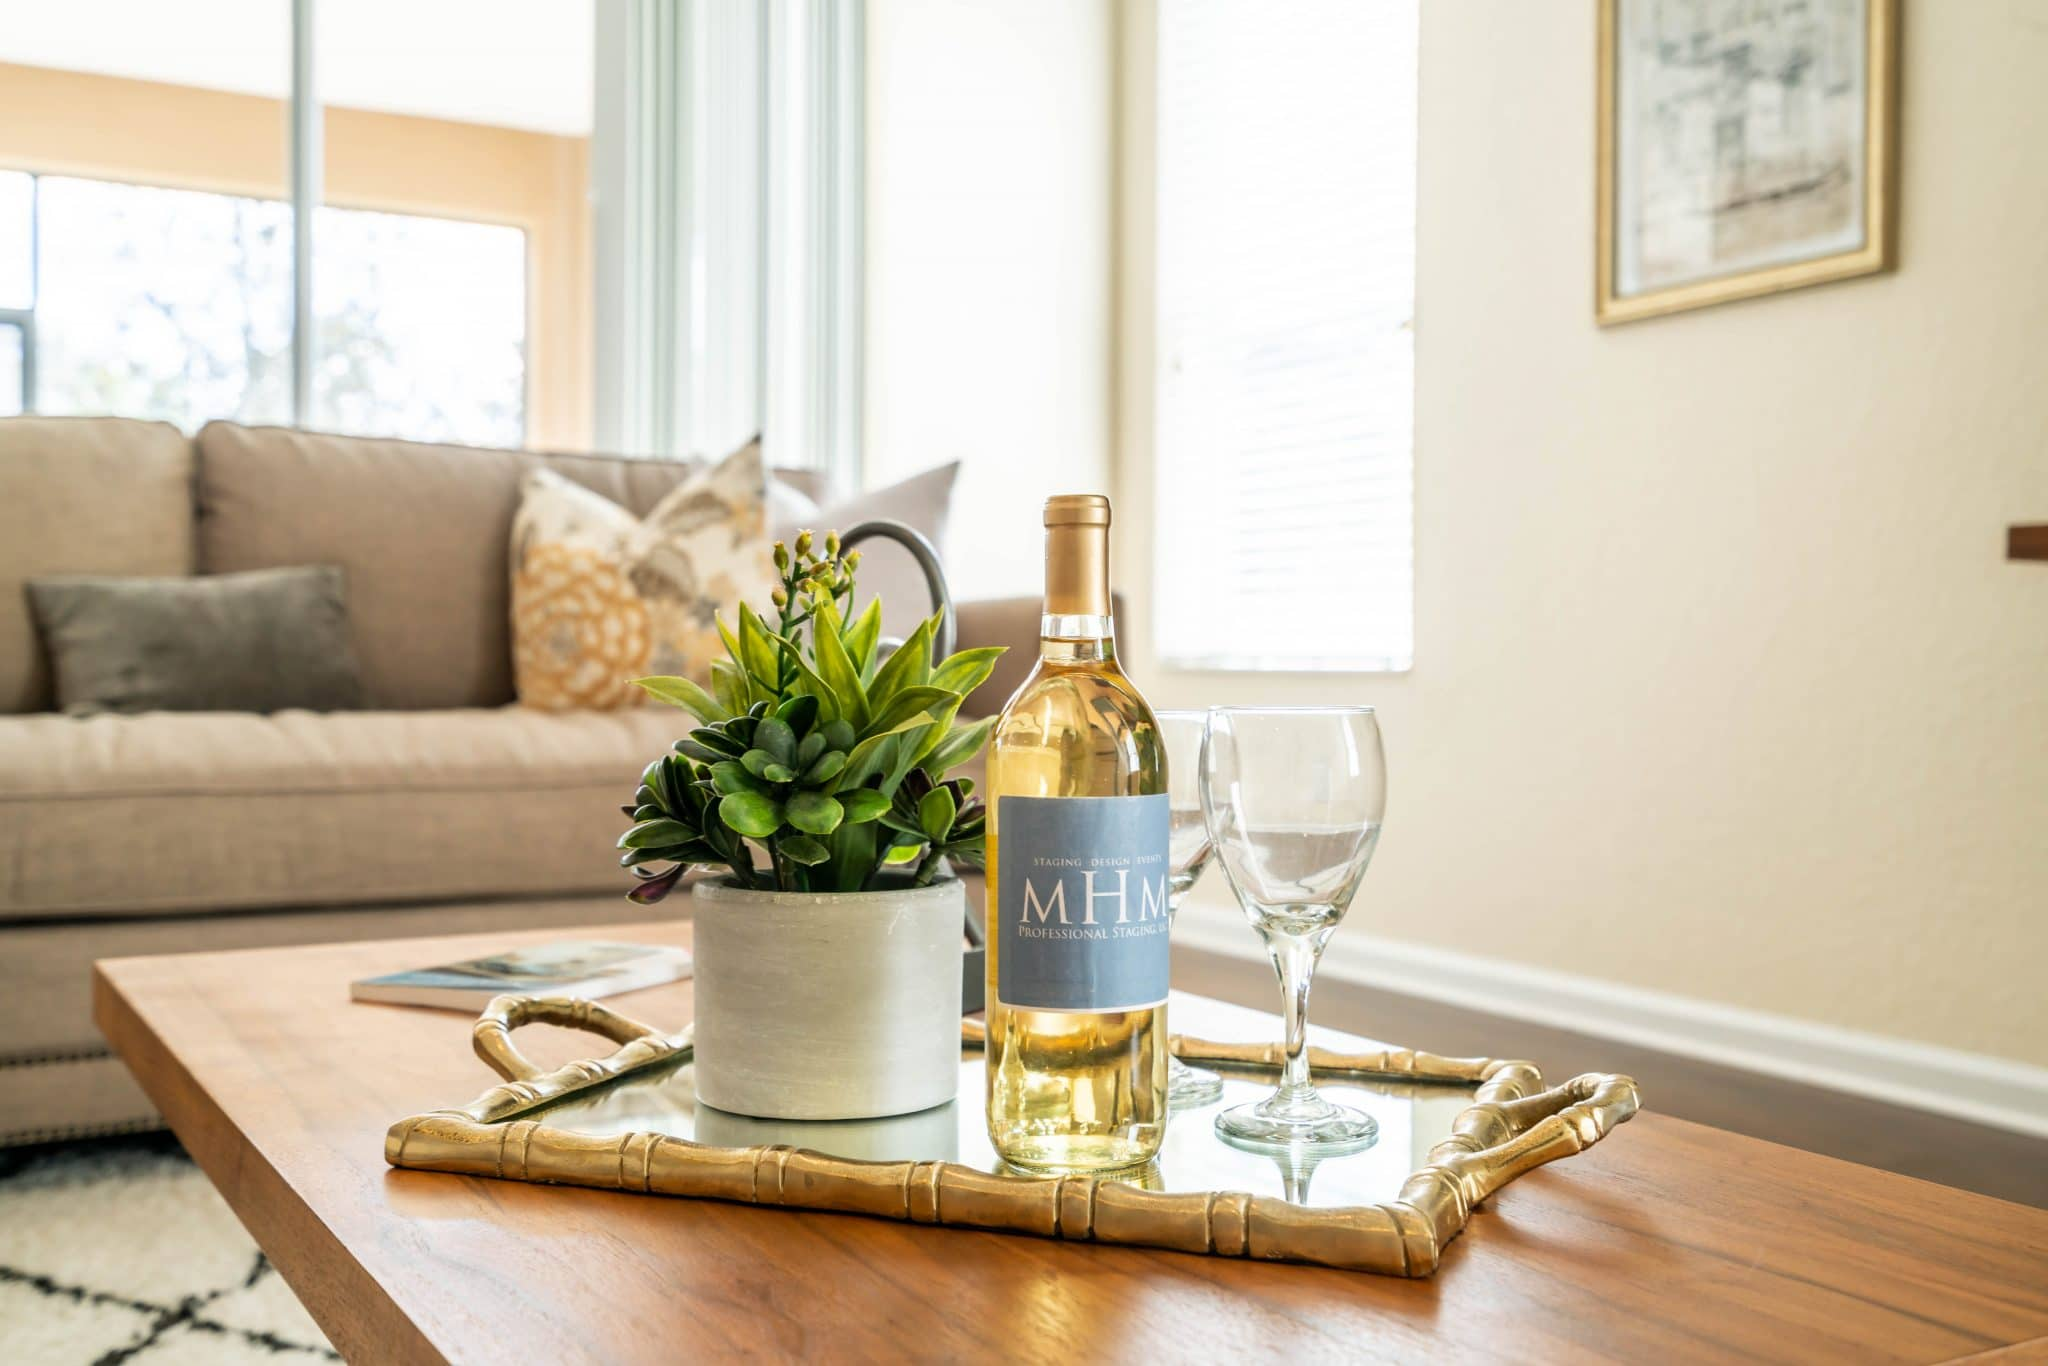 An example of soft staging: a tray with wine glasses, small plant, and bottle of wine on a coffee table